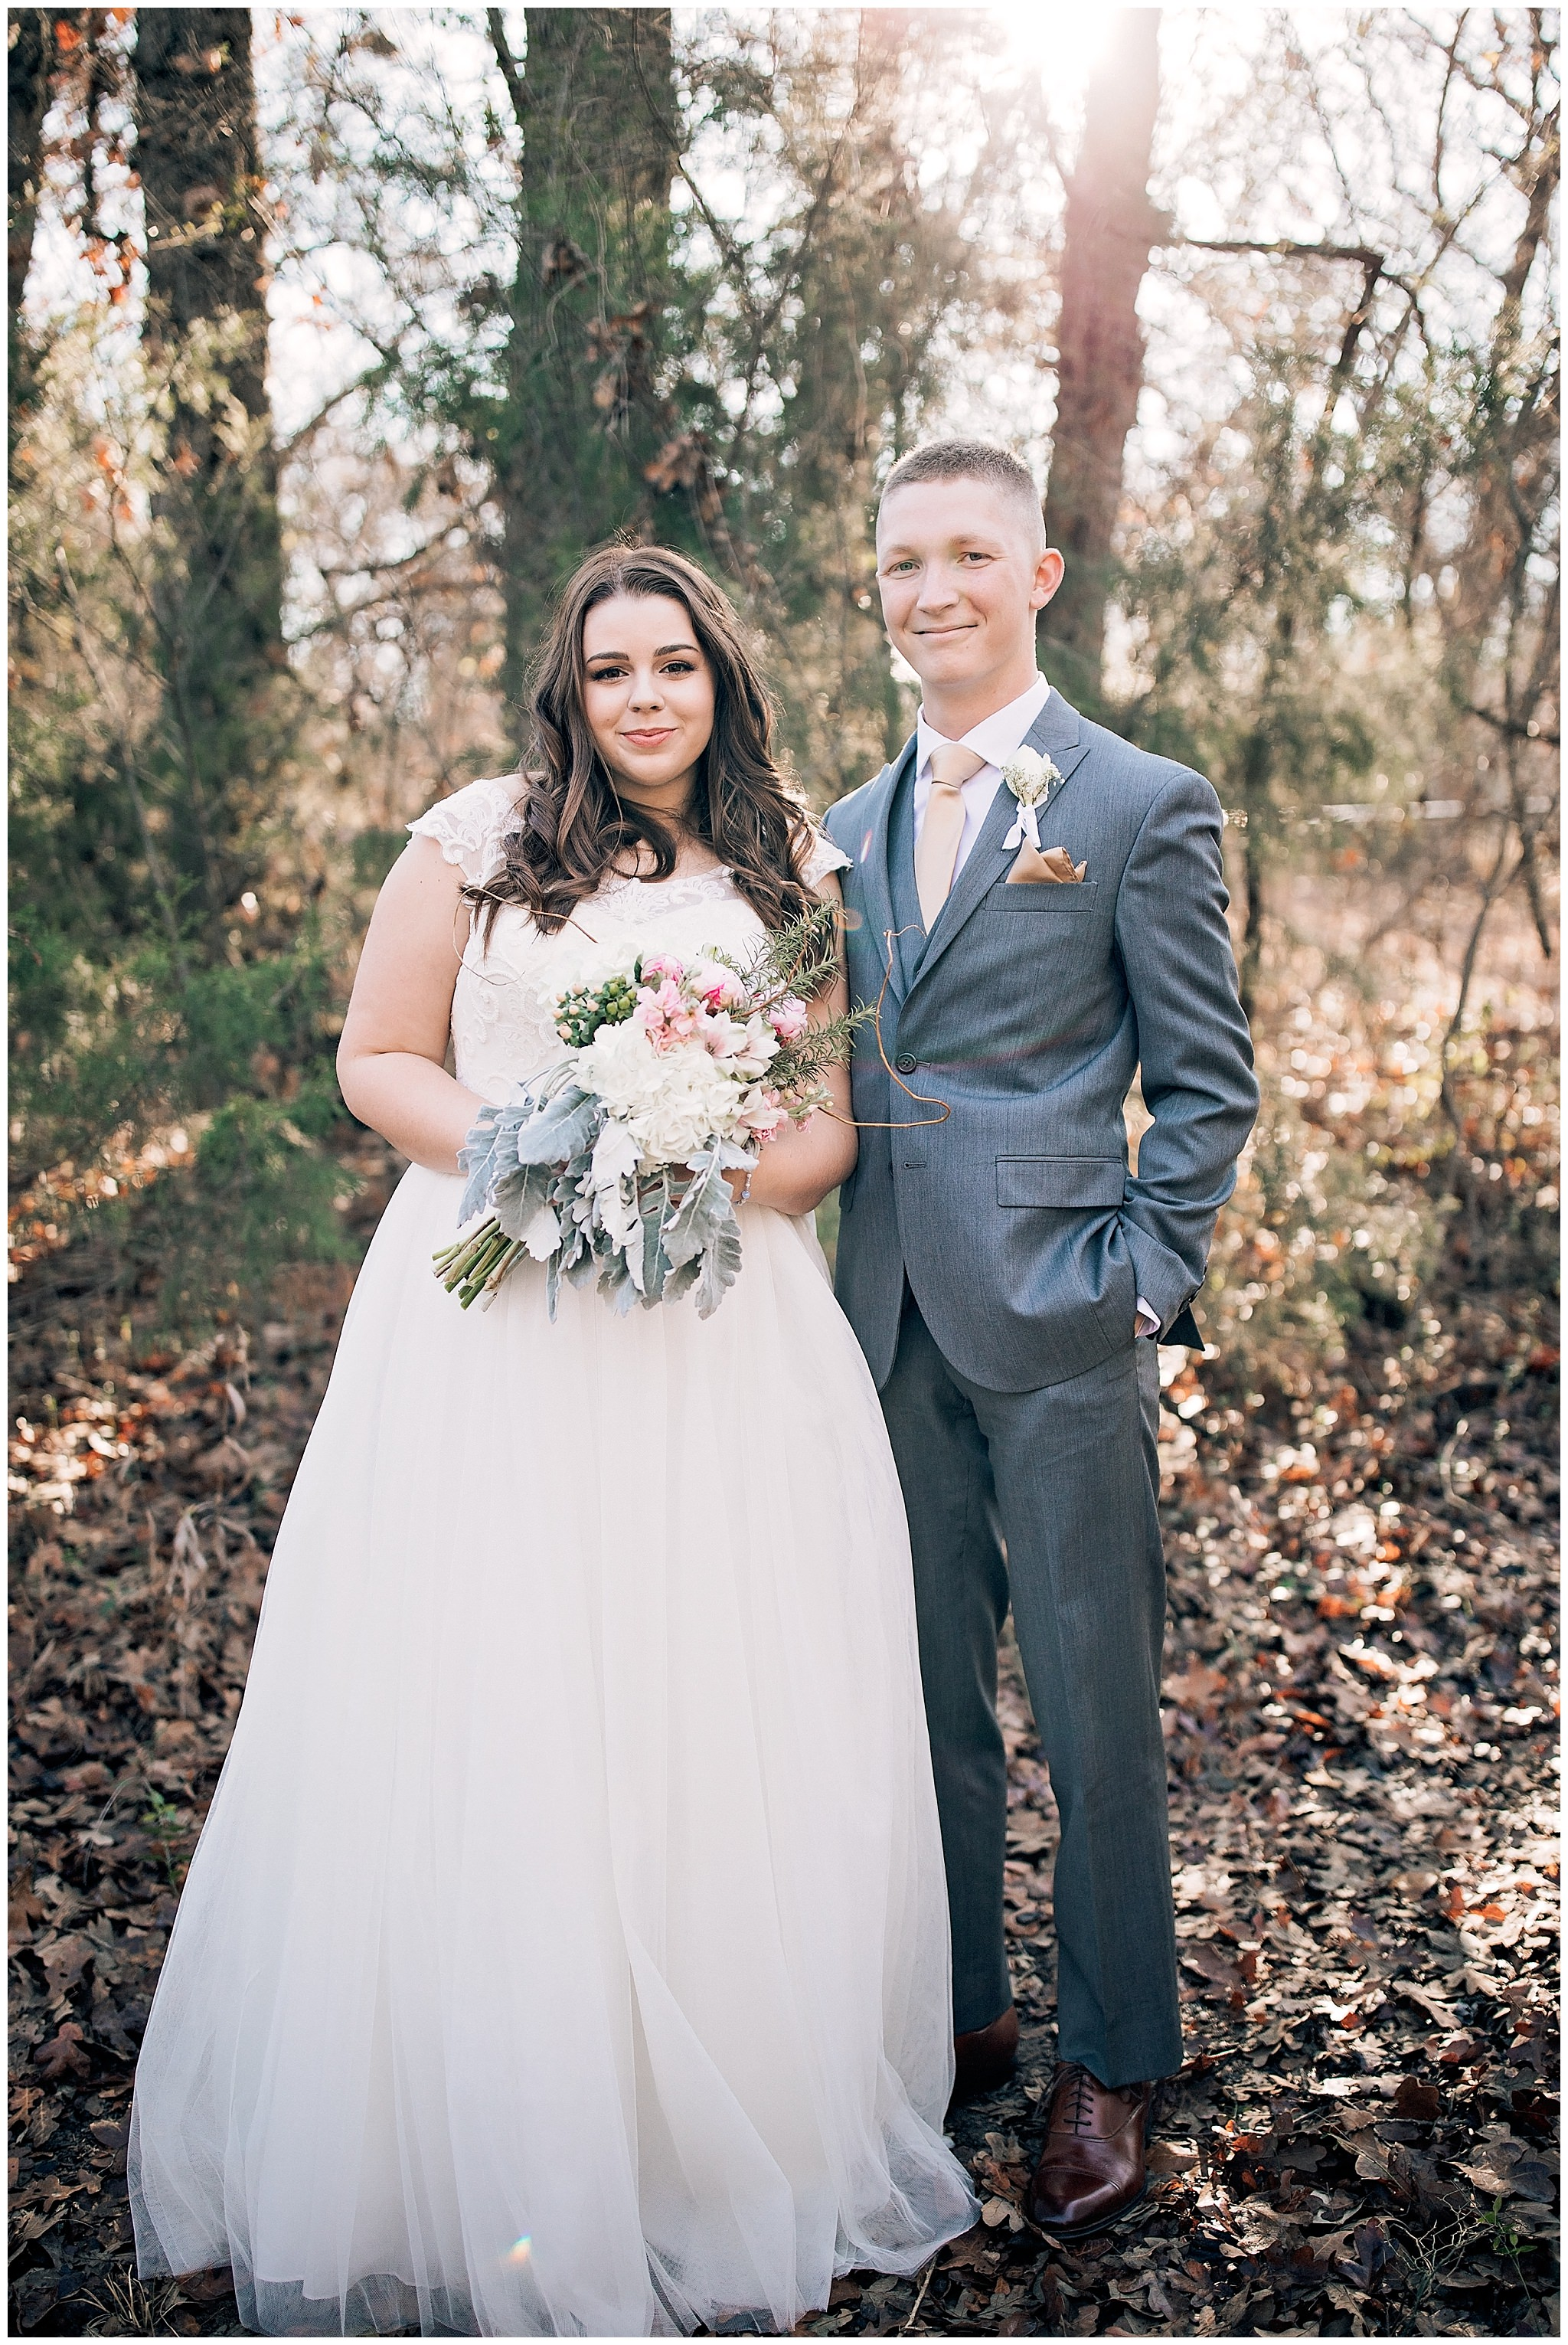 Gorgeous wedding photos in the countryside of TX